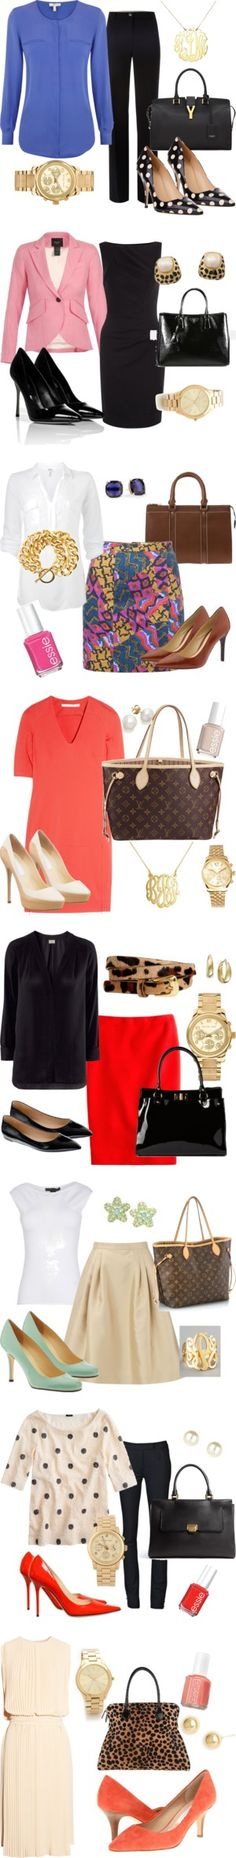 """Work Clothes 2013"" by kekilian on Polyvore"